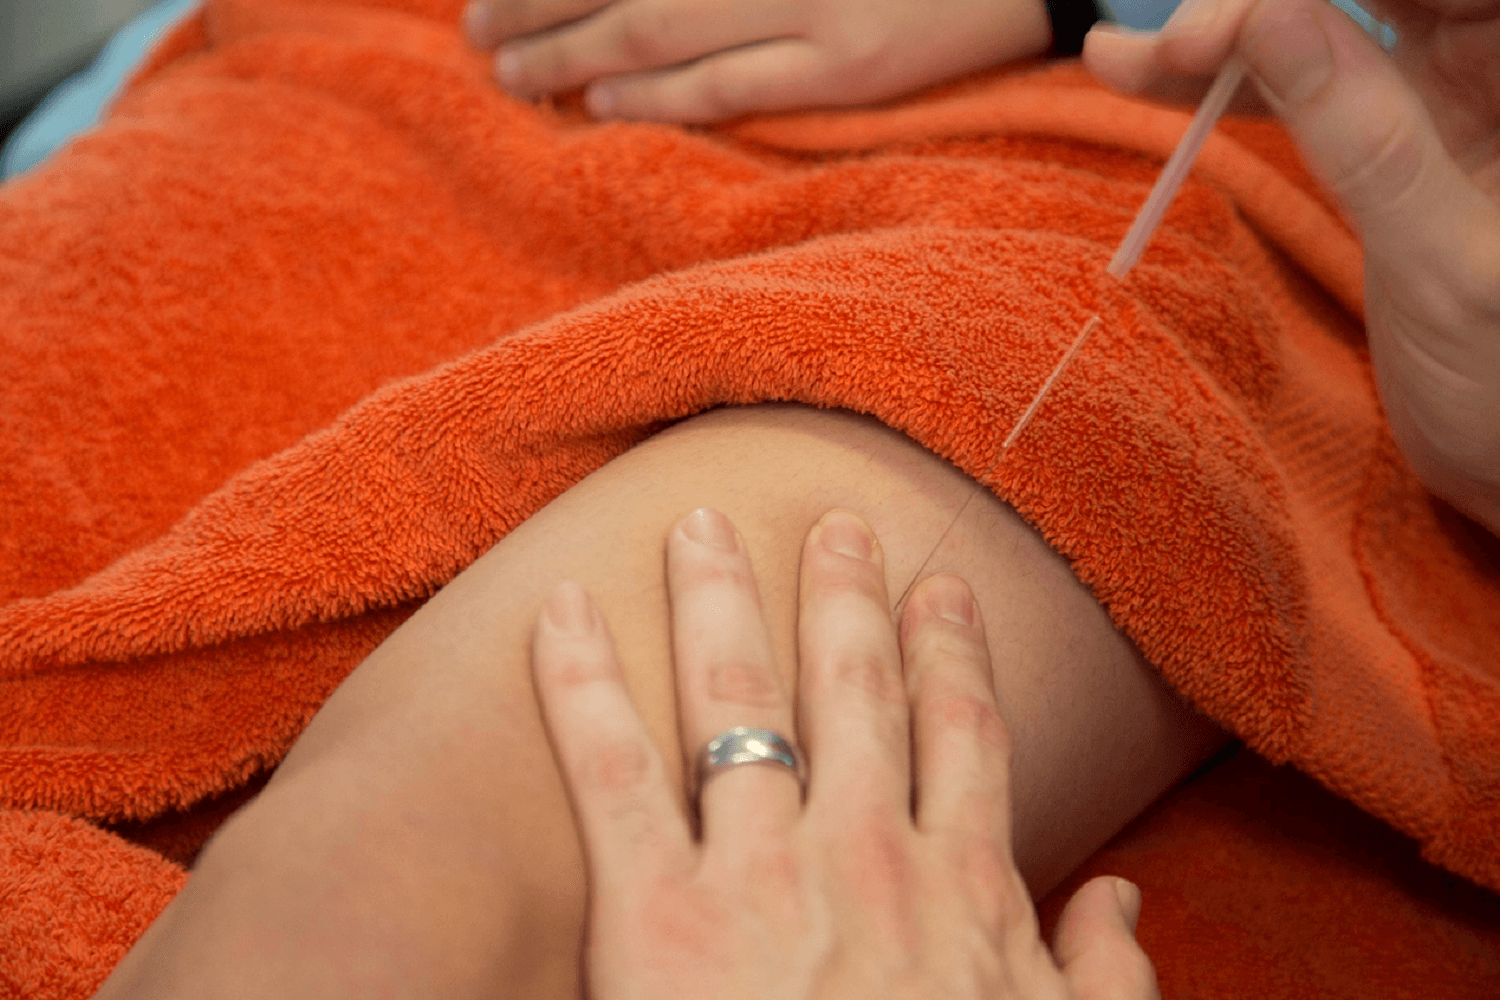 dry-needling-vs-acupuncture